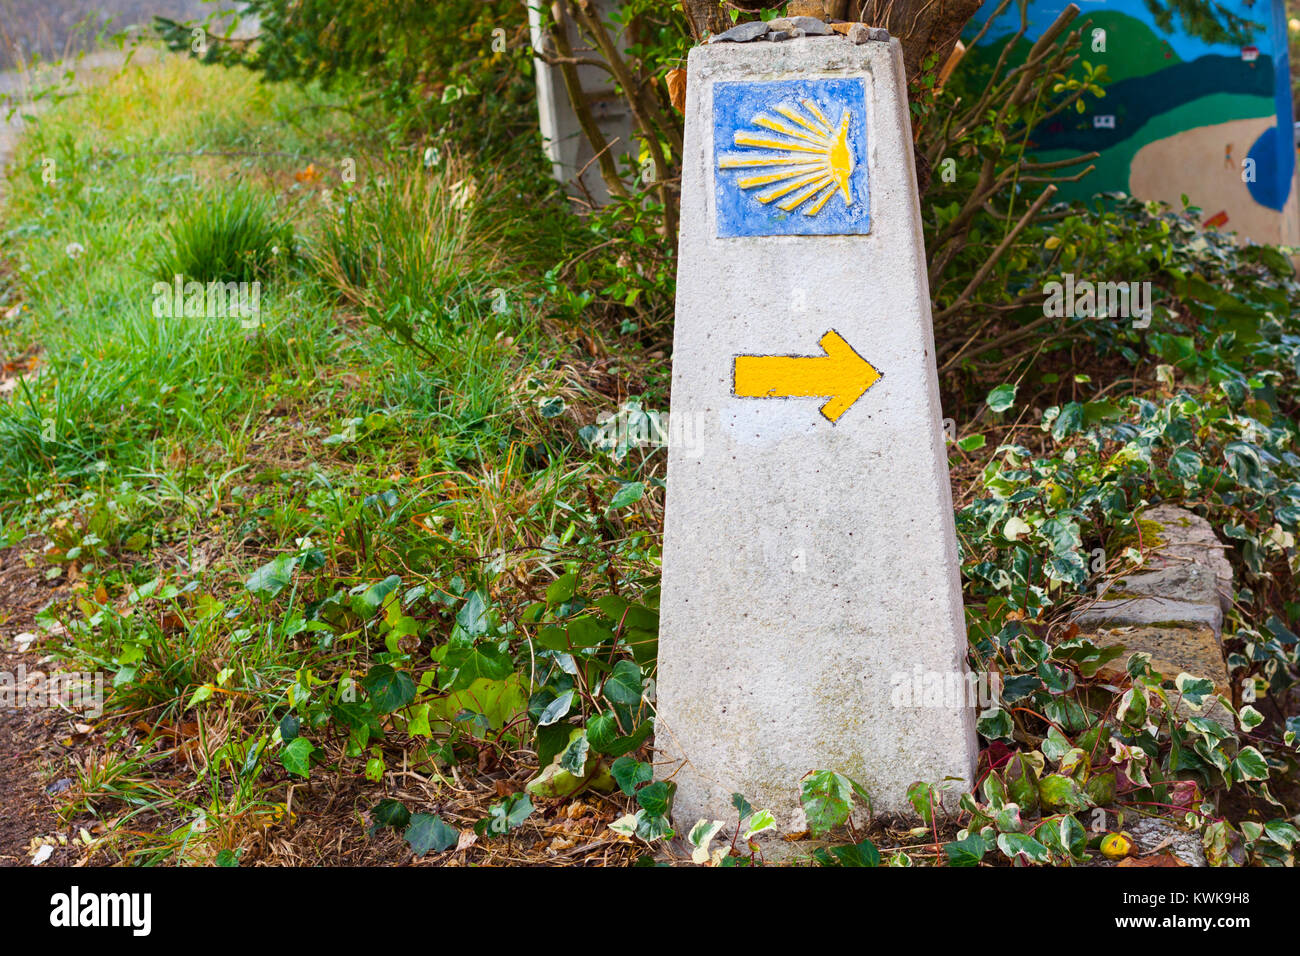 Typical Way of Saint James (Camino de Santiago) milestone with a yellow shell and yellow arrow - Stock Image